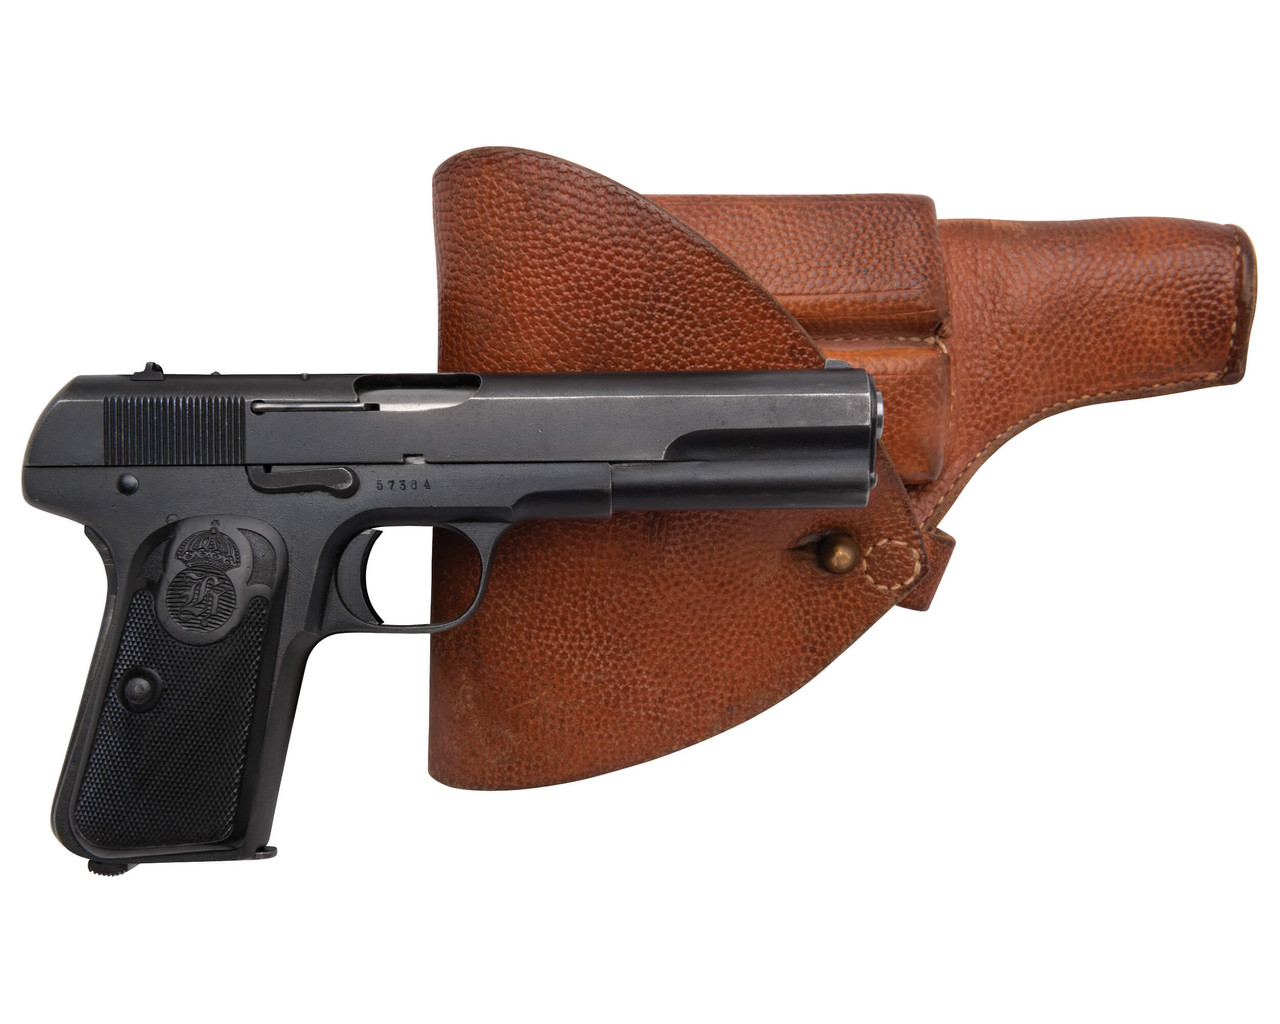 Husqvarna 1907 w/ Holster and Spare Mags - sn 573xx